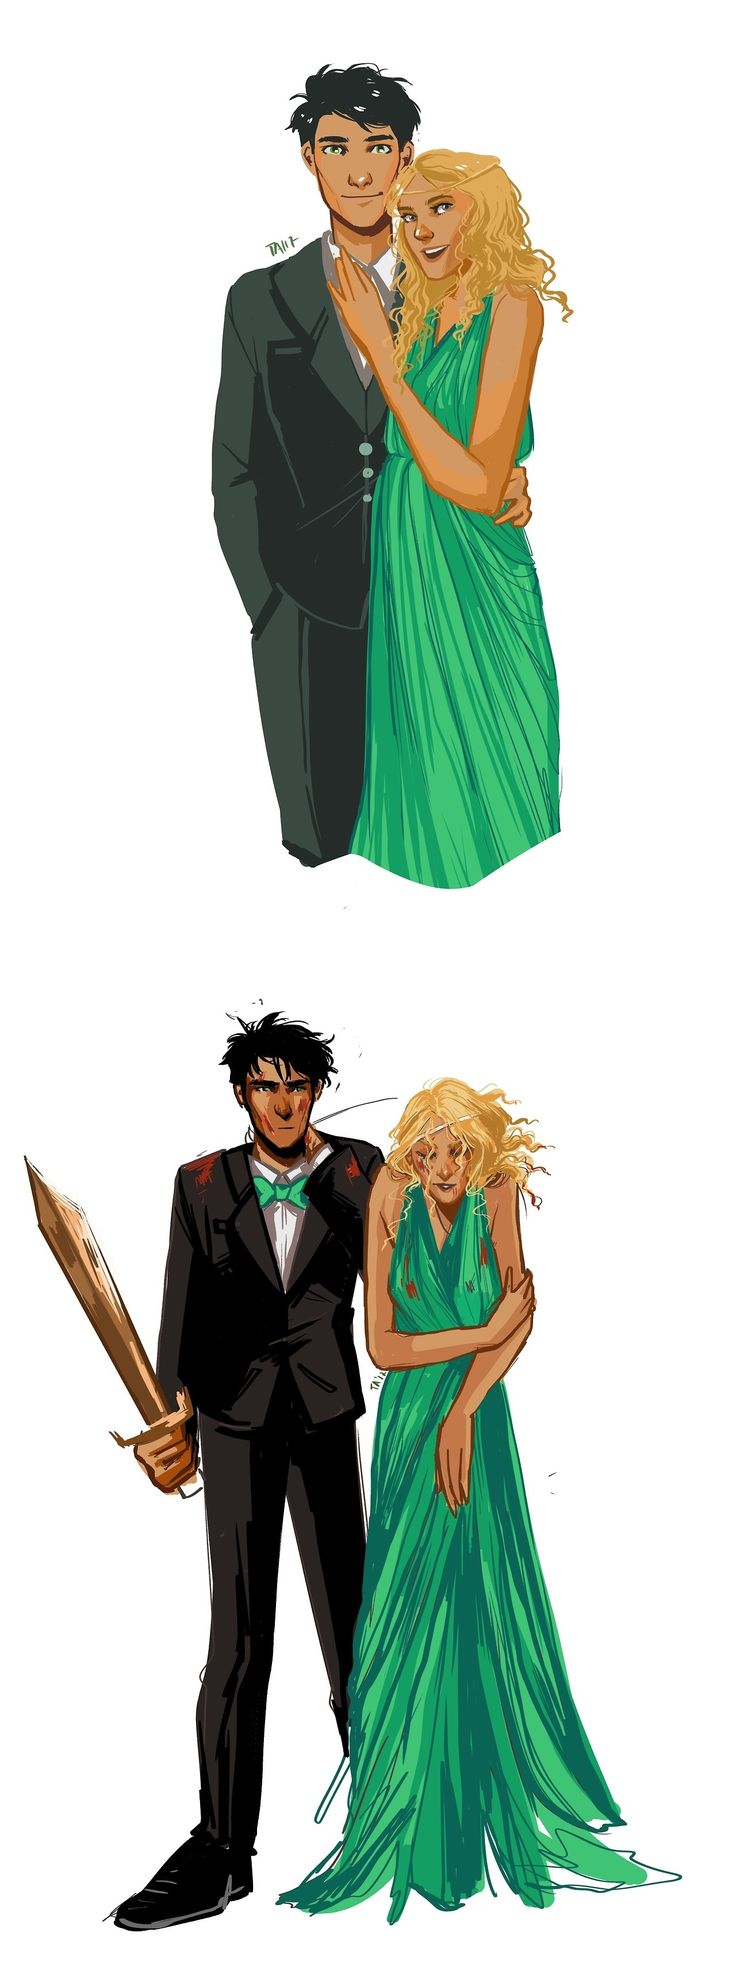 """Good thing your mum took a picture before we left""   Percabeth, unable to make it to prom without monster attacks and general chaos."